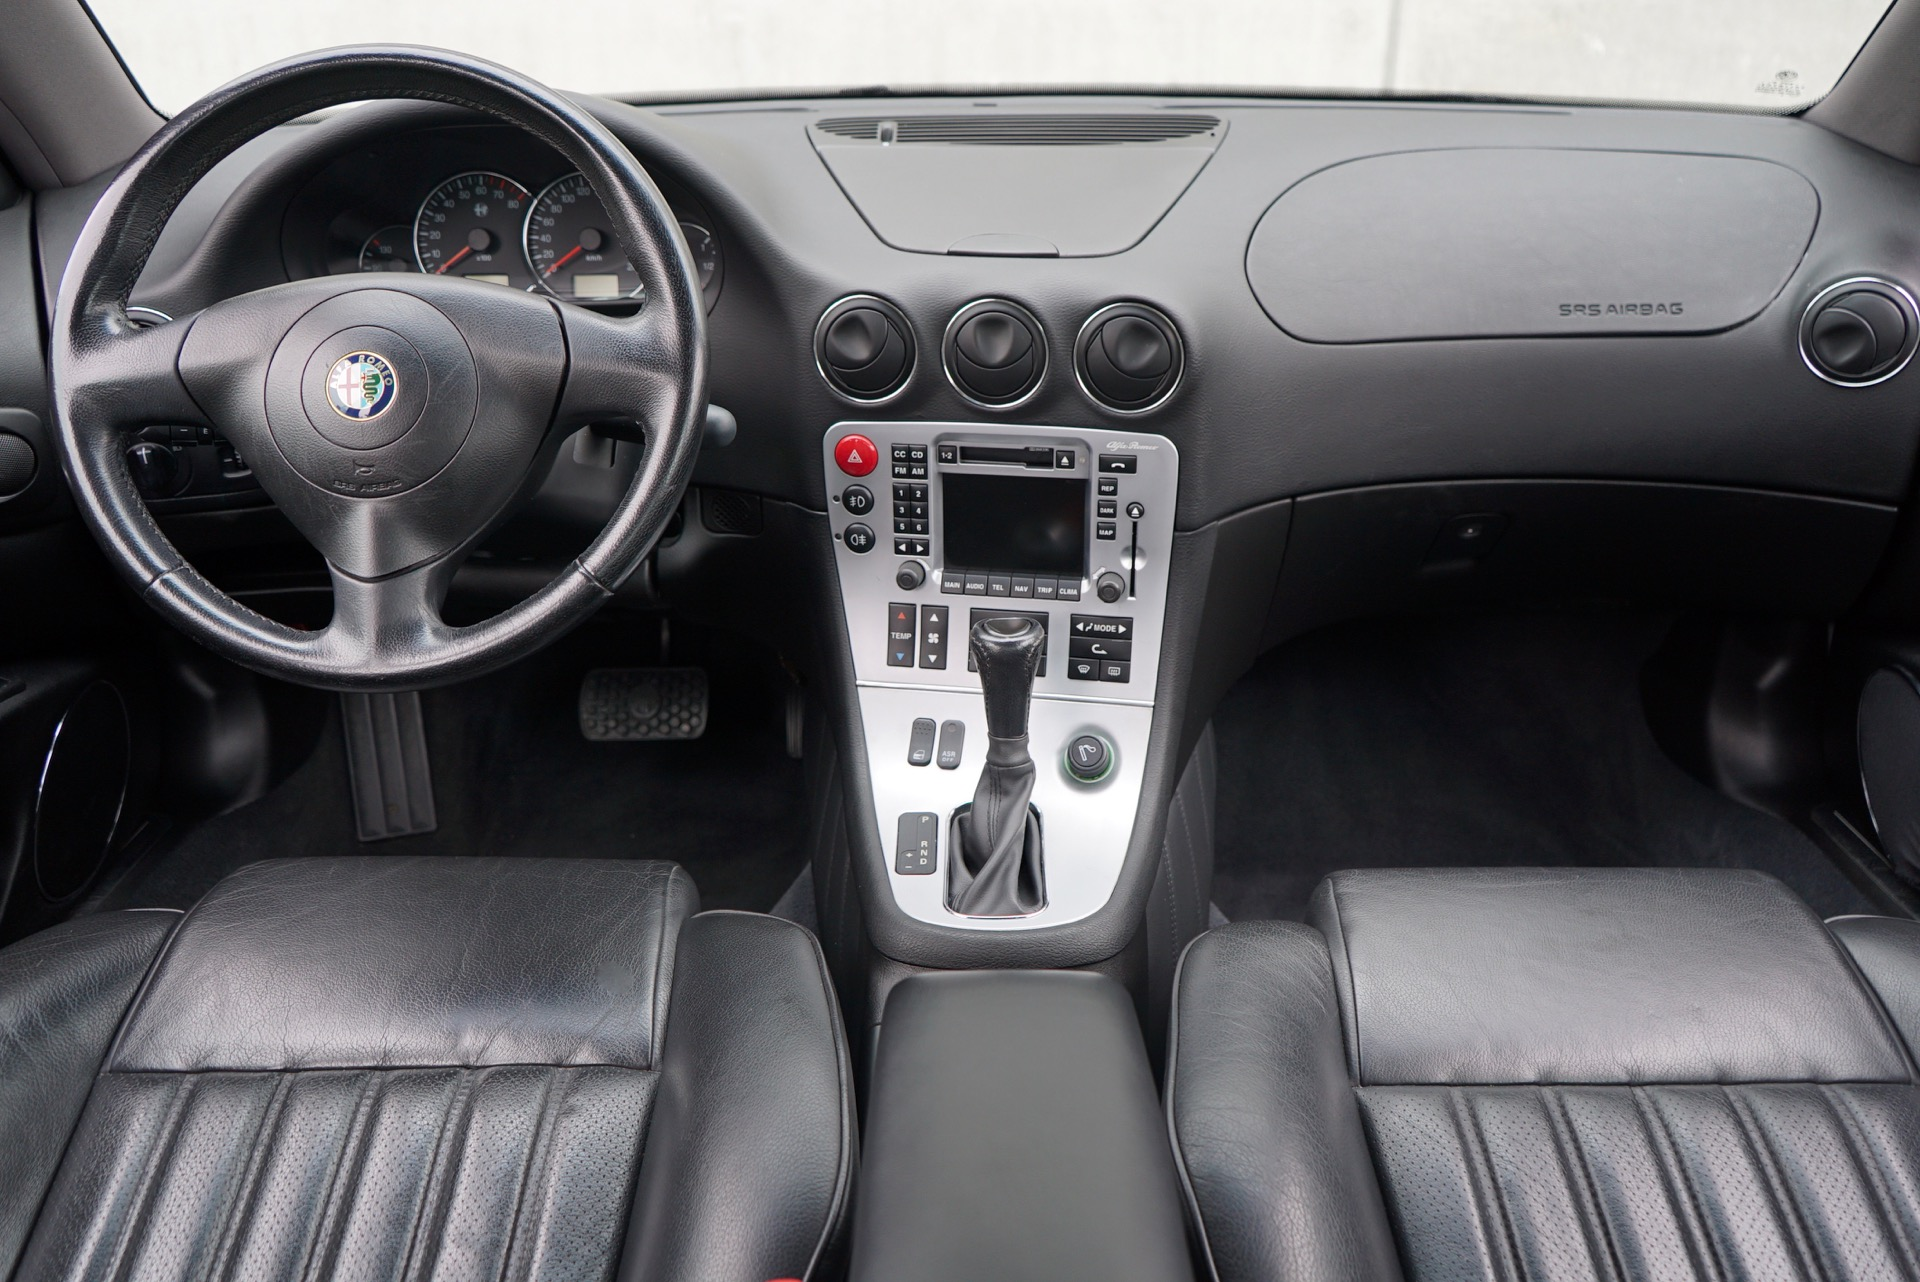 ALFA 166 3.0 SPORTRONIC DISTINCTIVE 1 OWNER ONLY 58.000KM